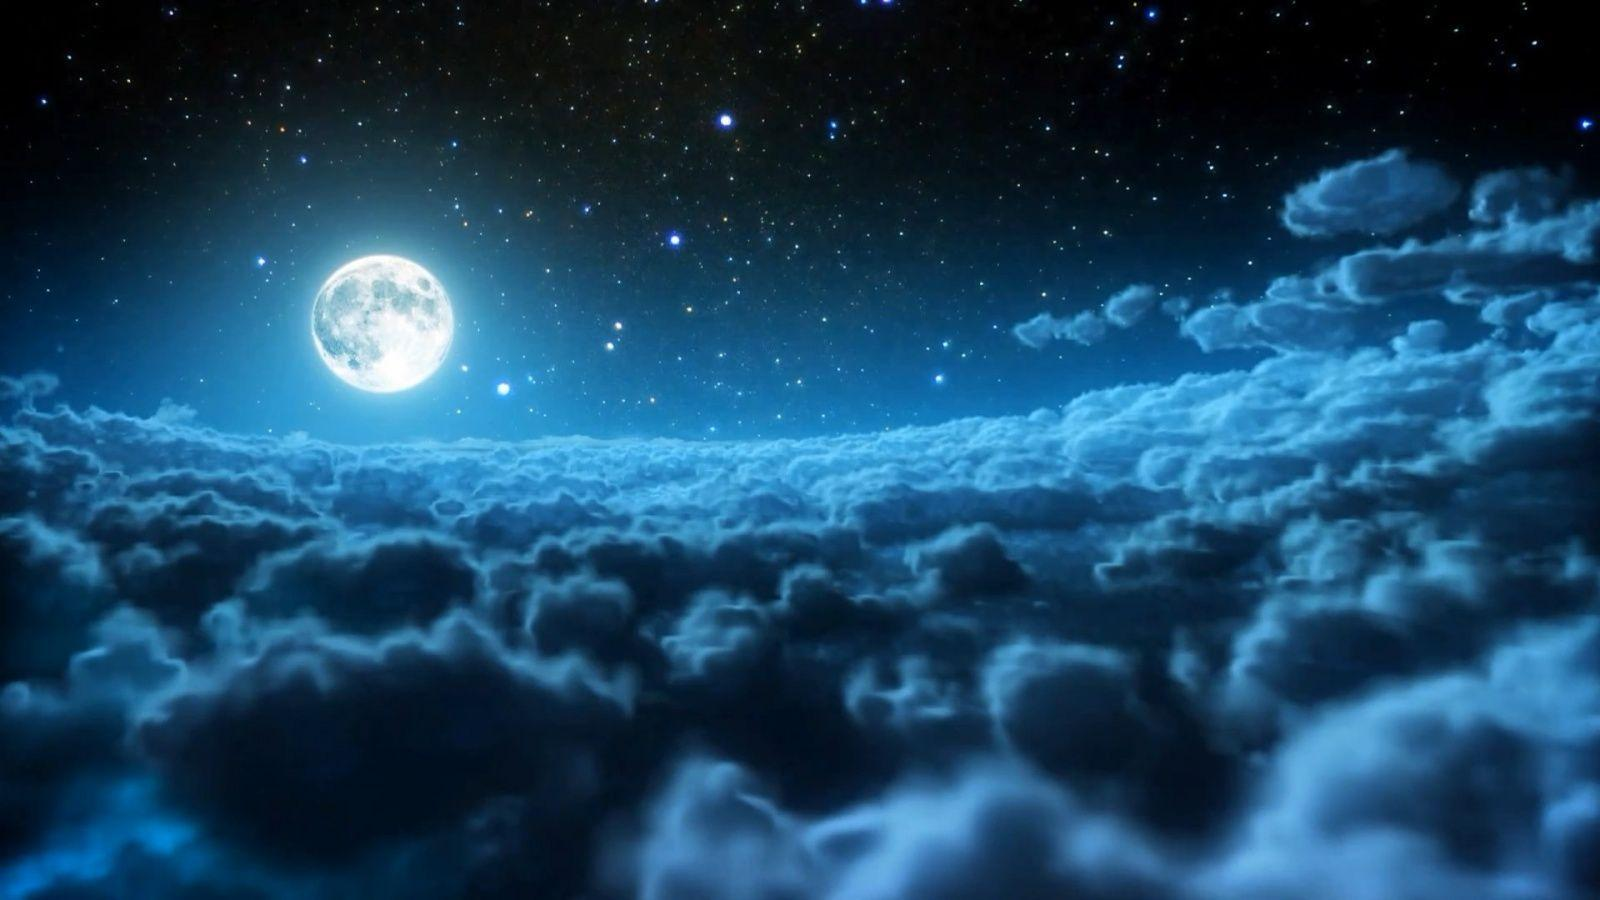 blue night sky background - photo #26